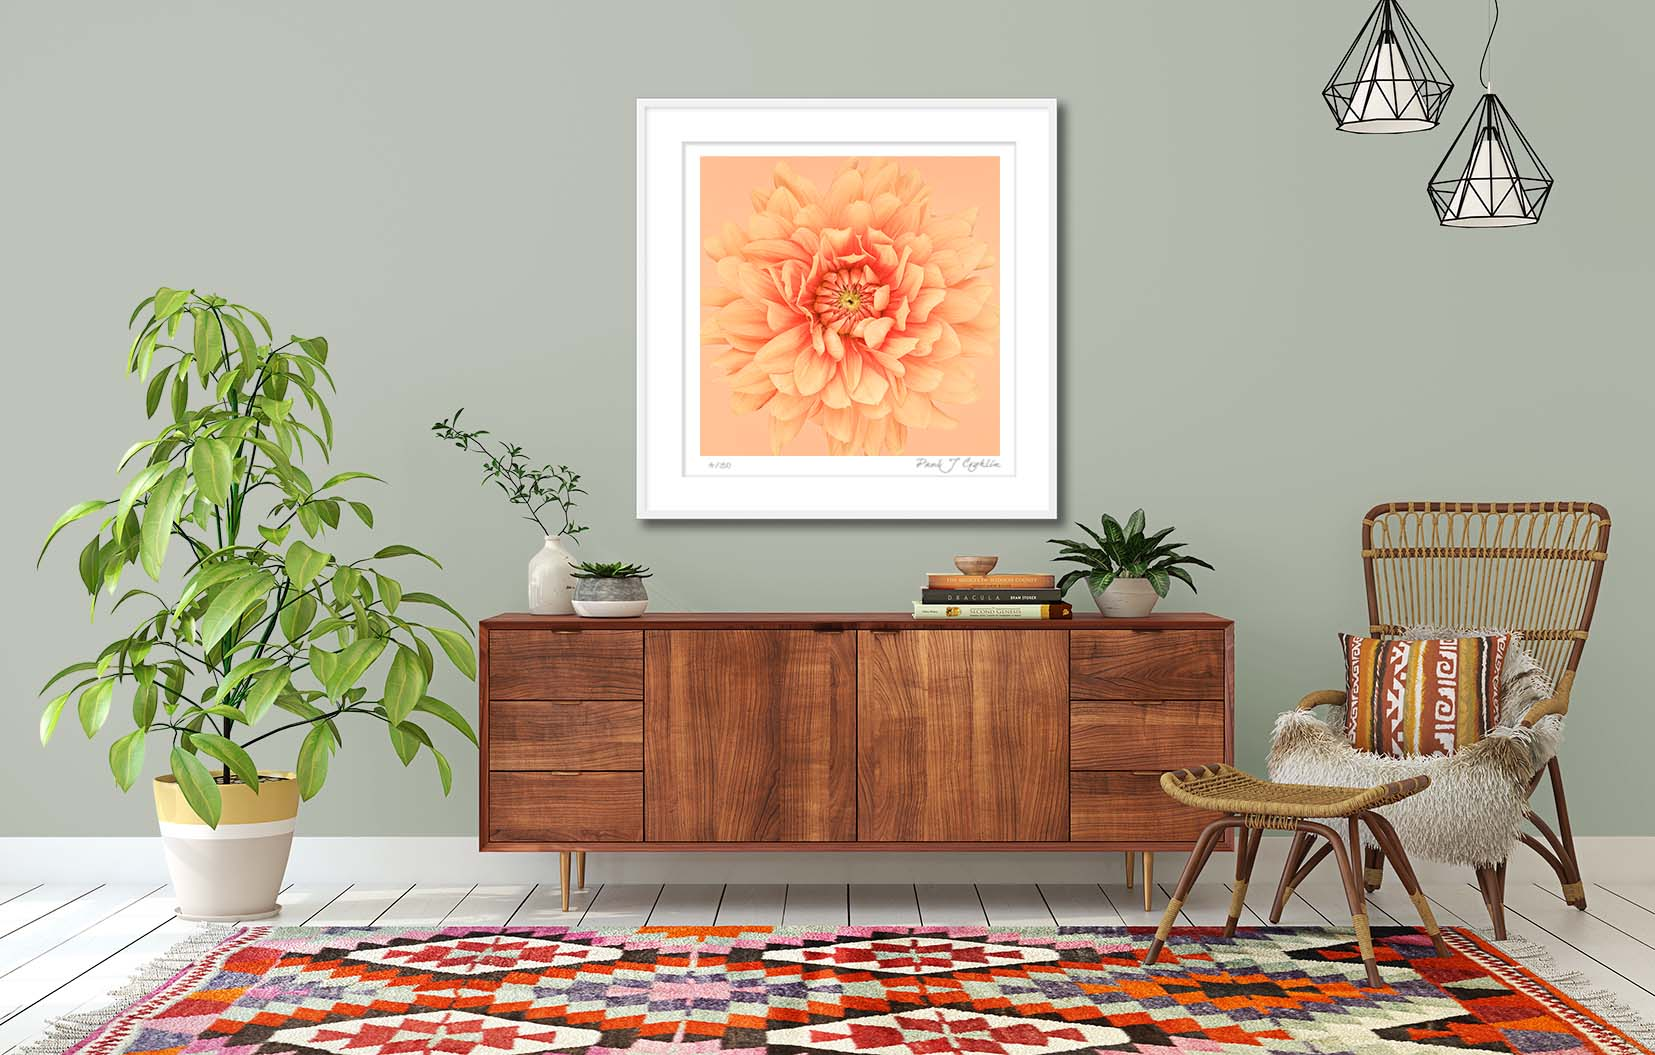 Orange Dahlia Flames II. Limited edition fine art print of an orange dahlia. Botanical prints and floral studies by fine art photographer Paul Coghlin.